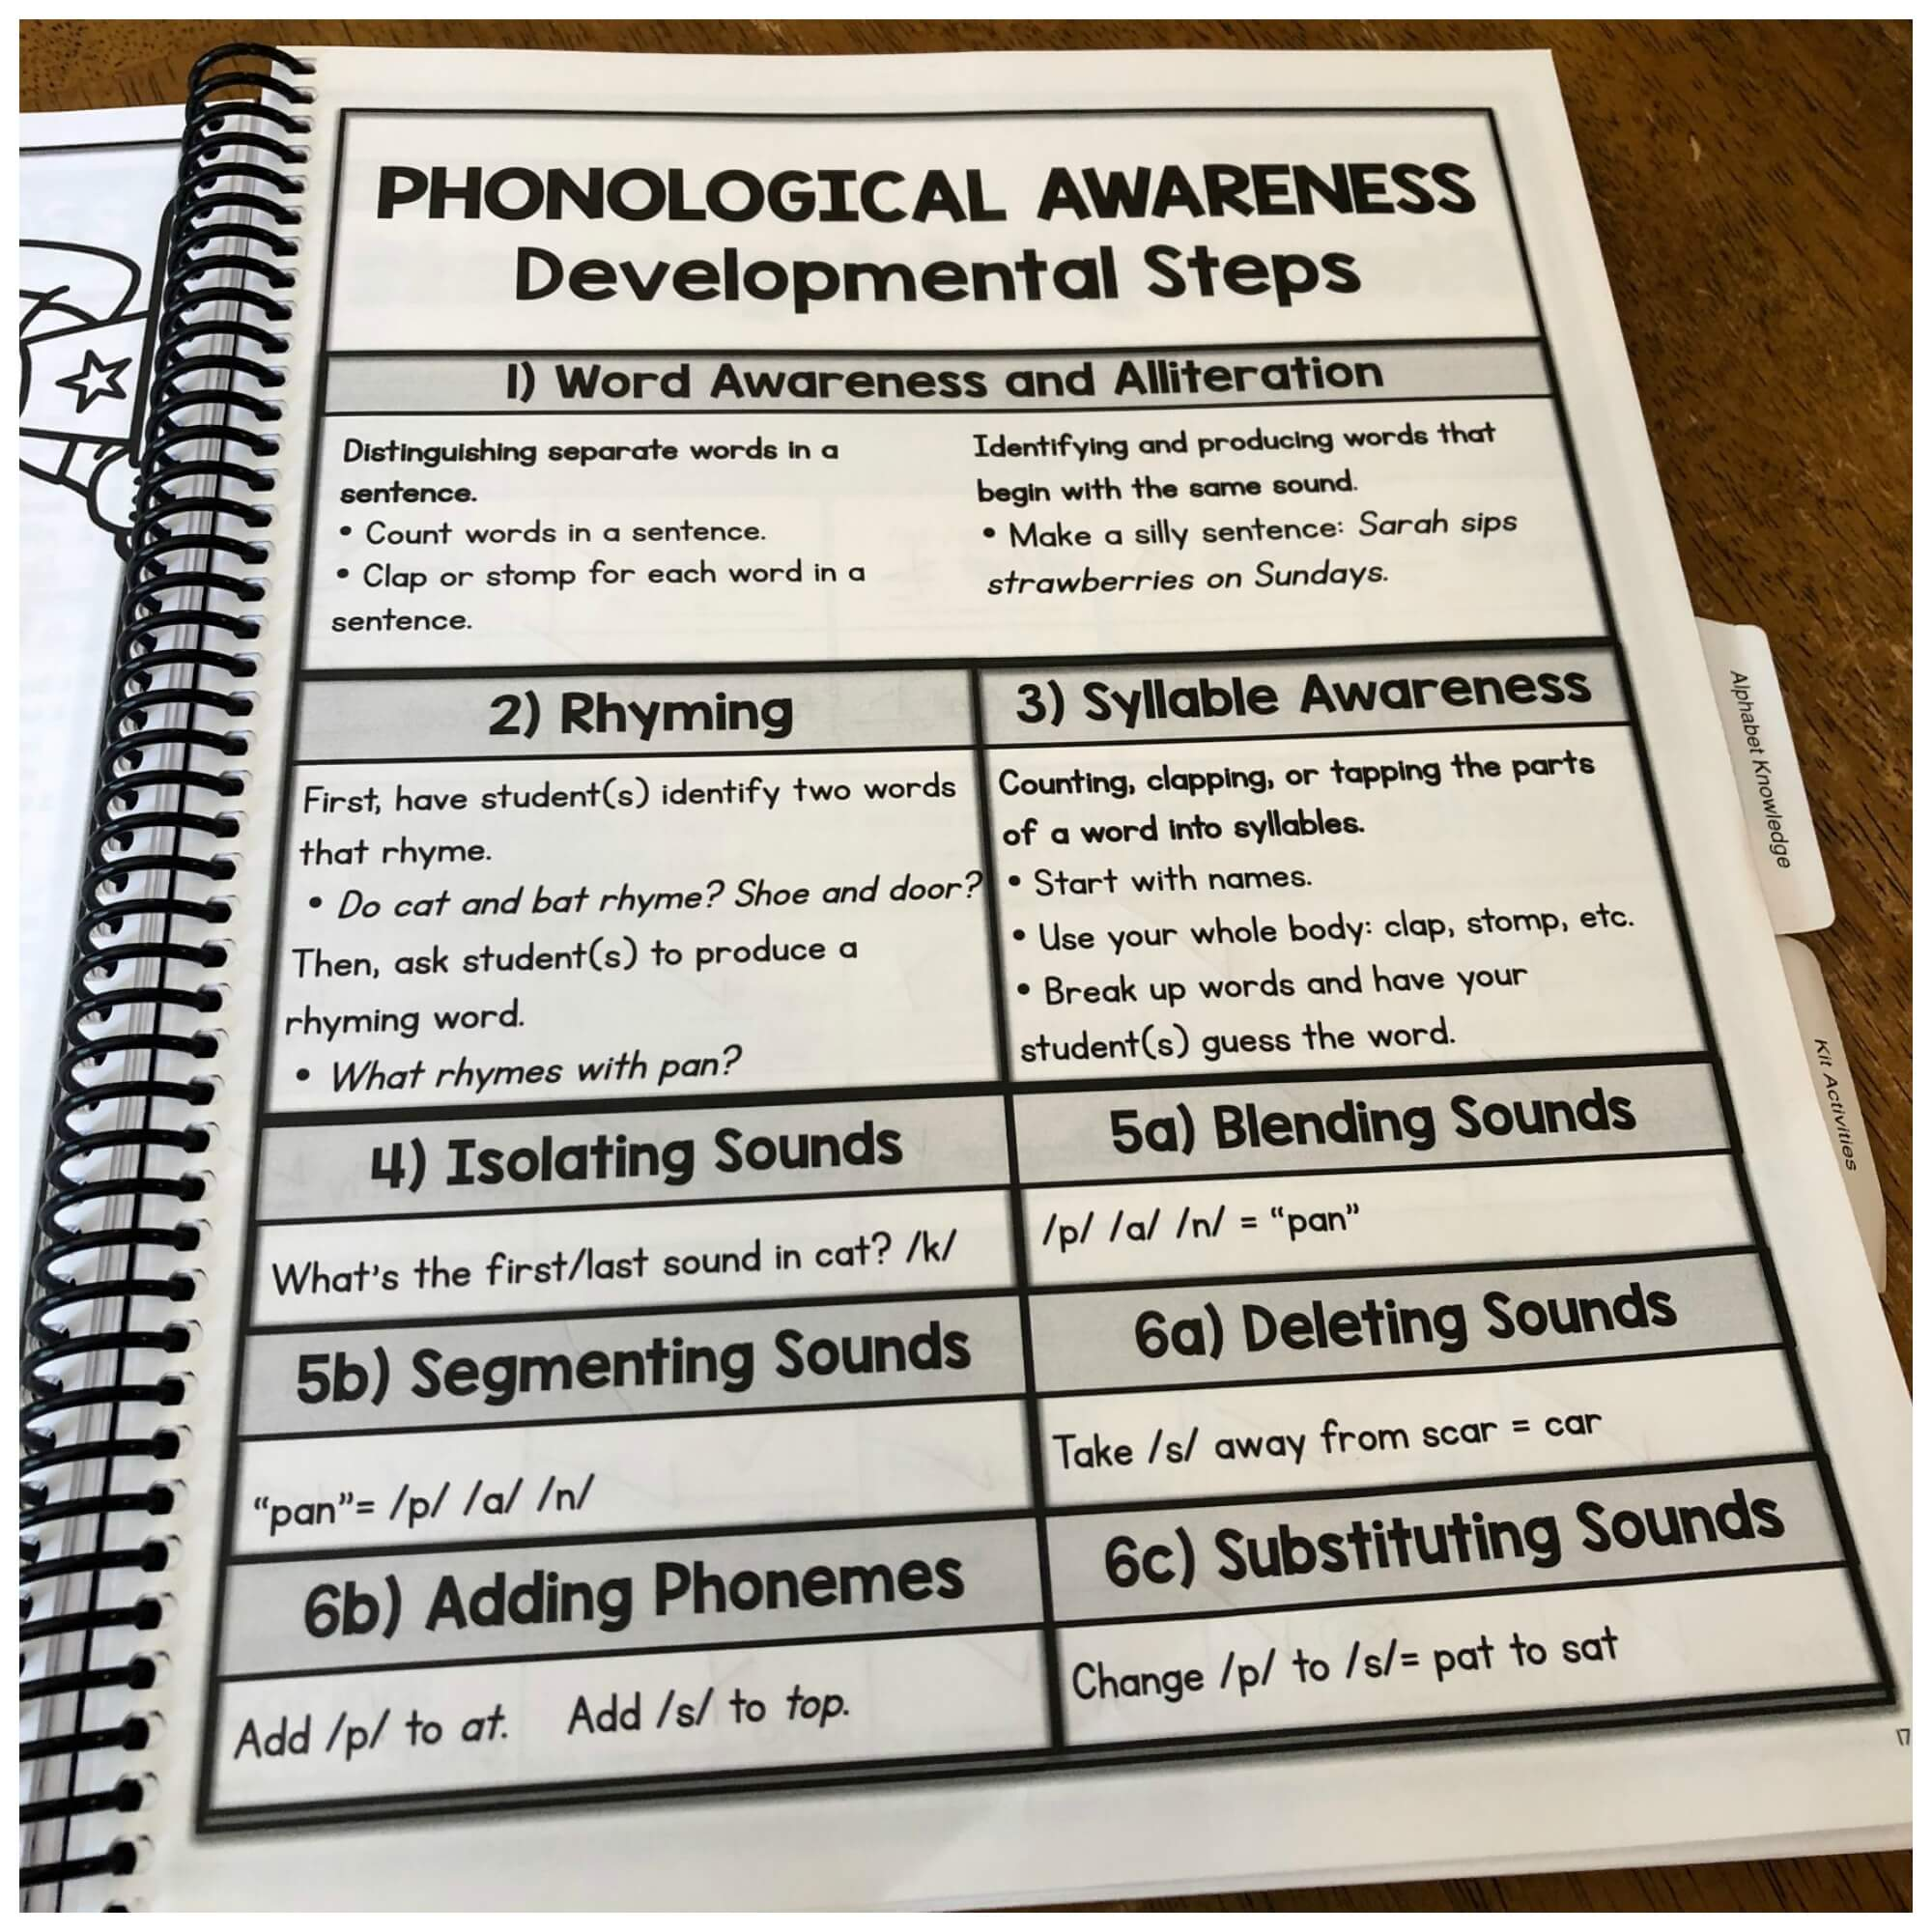 phonological awareness is a common struggle for kids with dyslexia